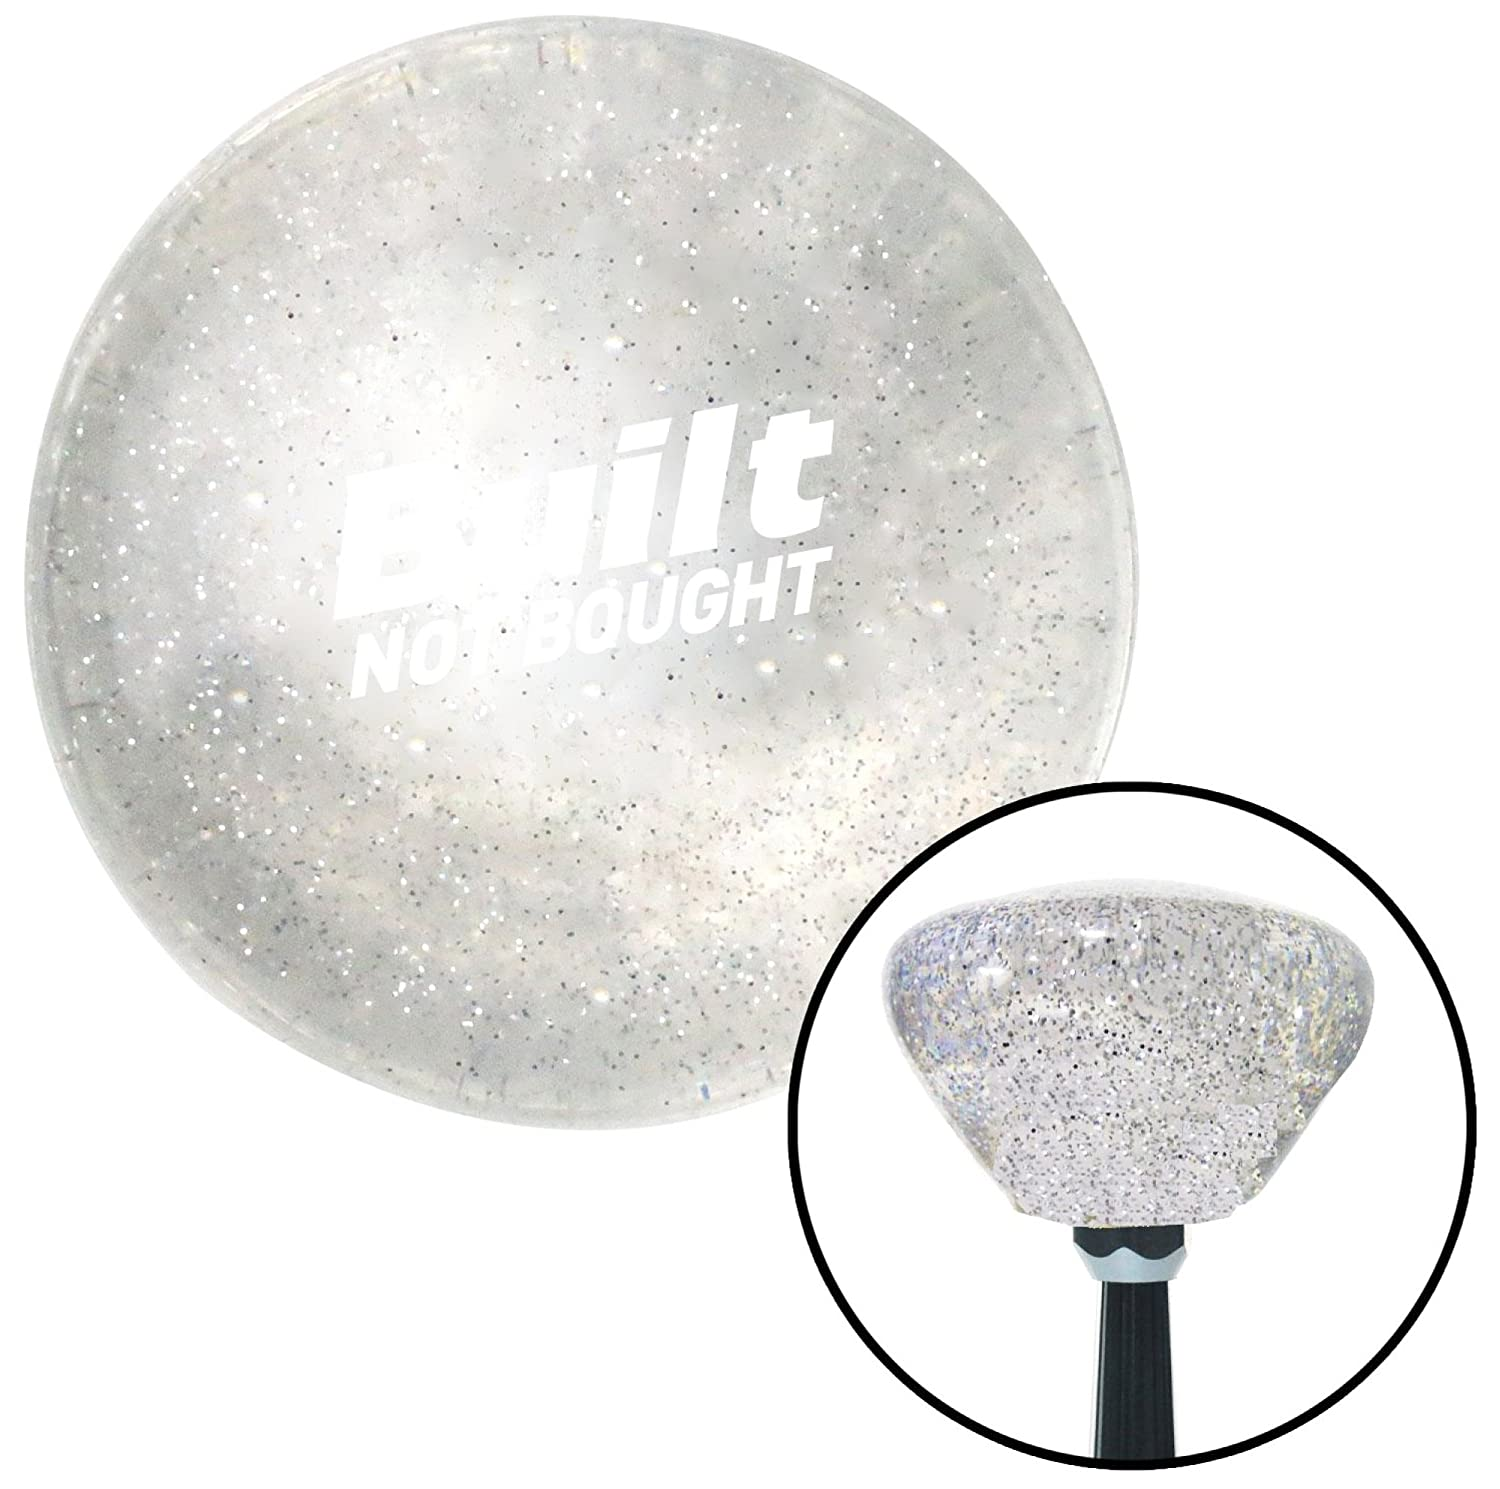 American Shifter 327694 White Built Not Bought Simple Clear Retro Metal Flake Shift Knob with M16 x 1.5 Insert